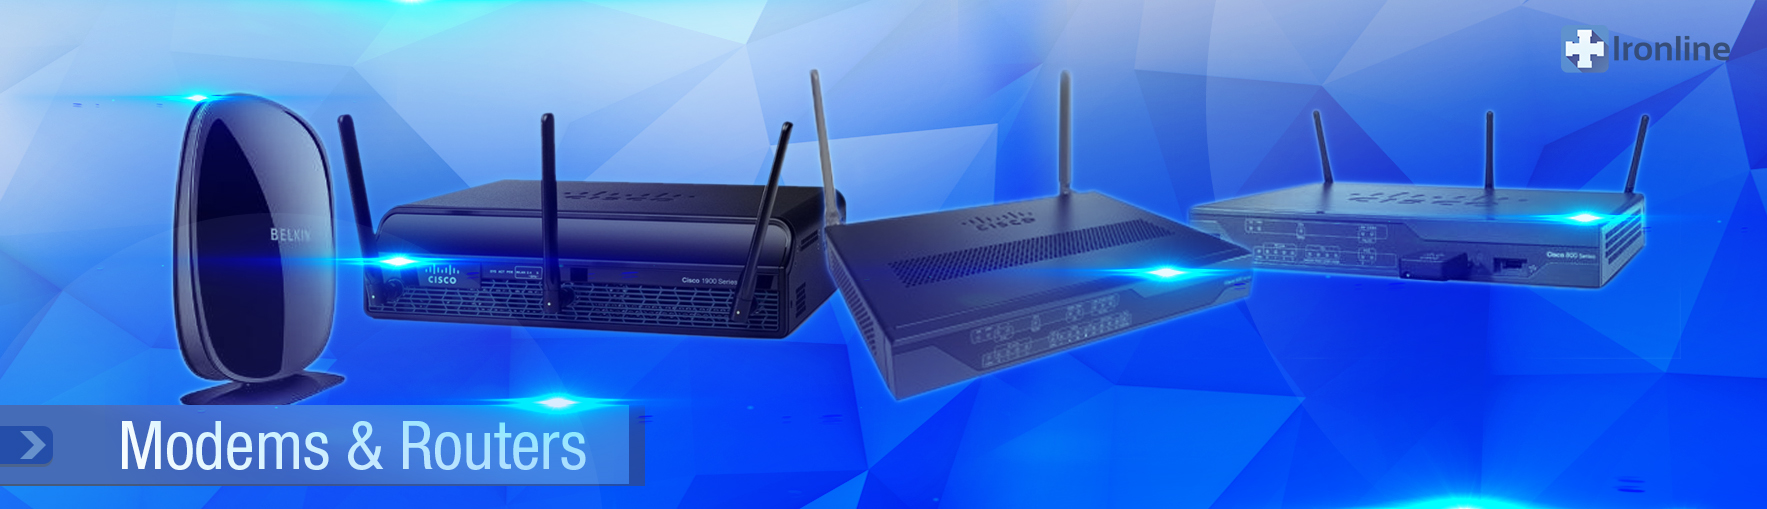 Modems & Routers